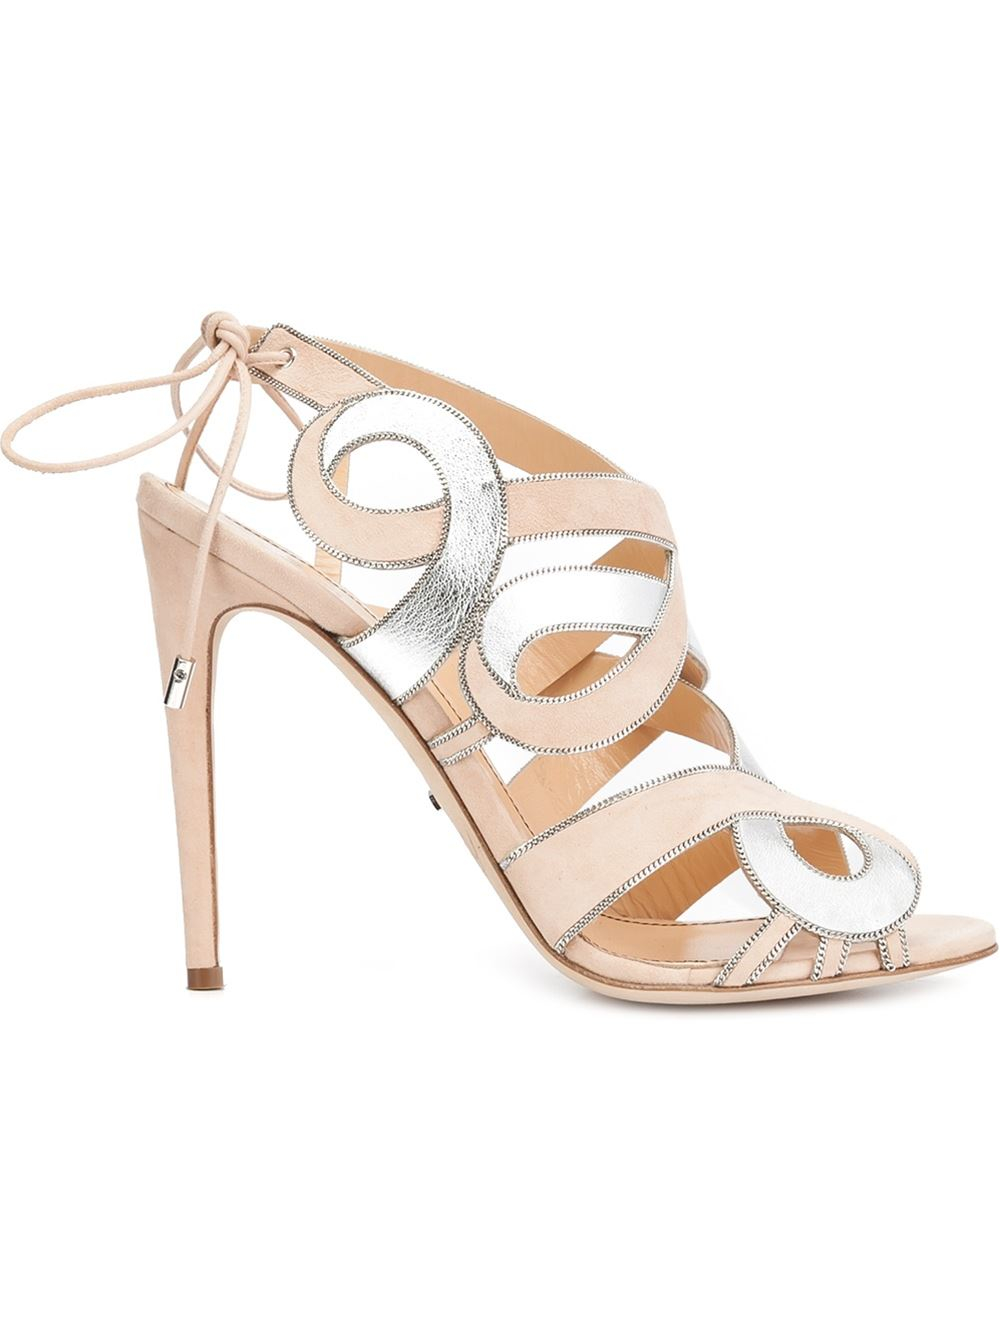 Jerome C. Rousseau Ruched Slingback Sandals high quality online buy cheap excellent Ld5XDkkJ